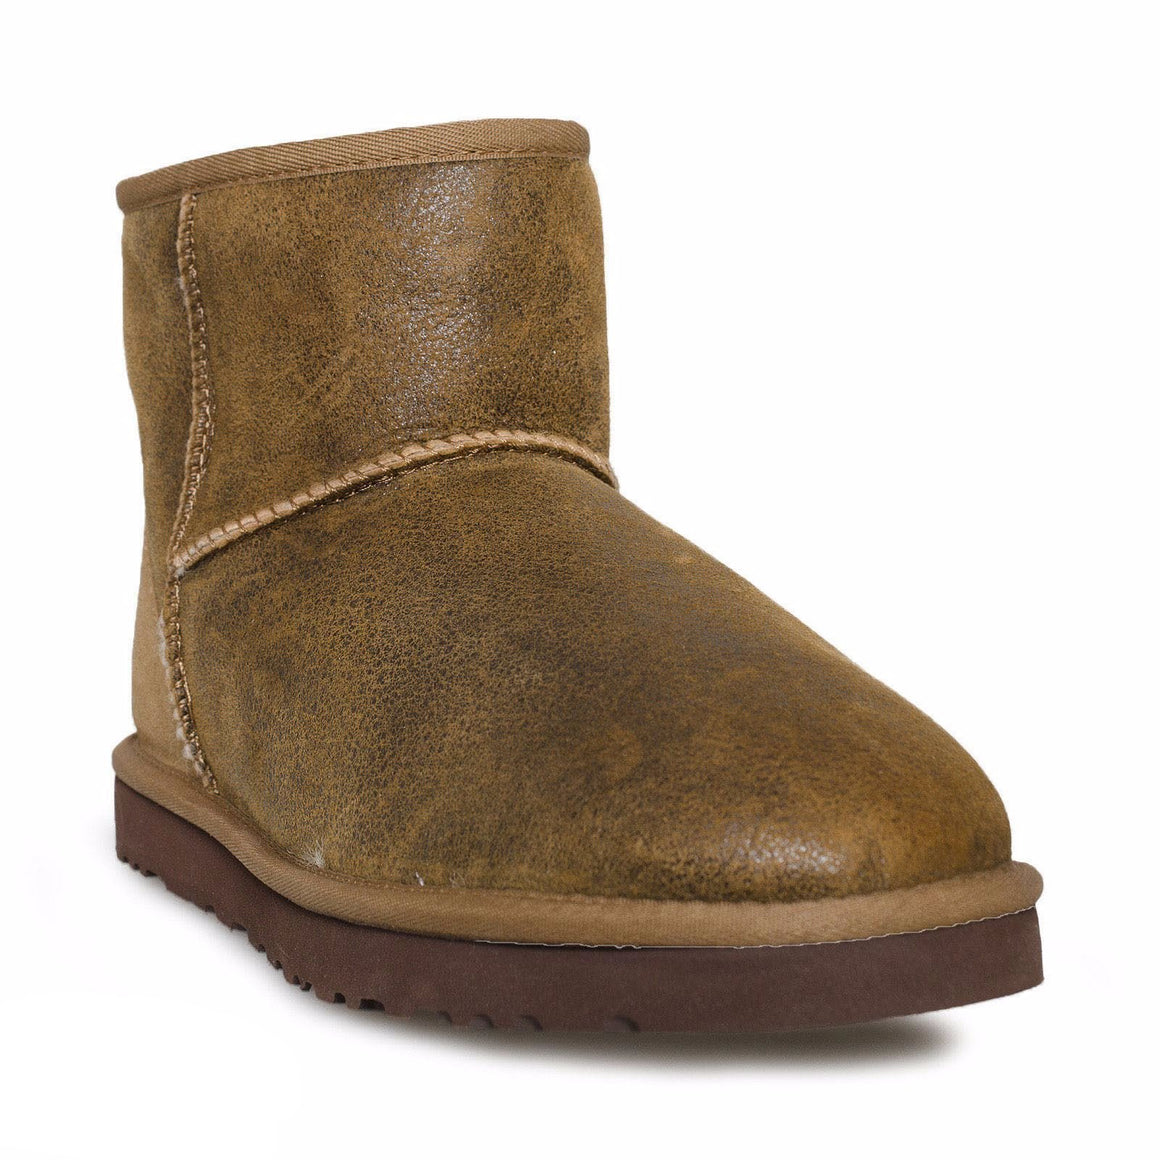 UGG Classic Mini Bomber Leather Chestnut Boots - Men's